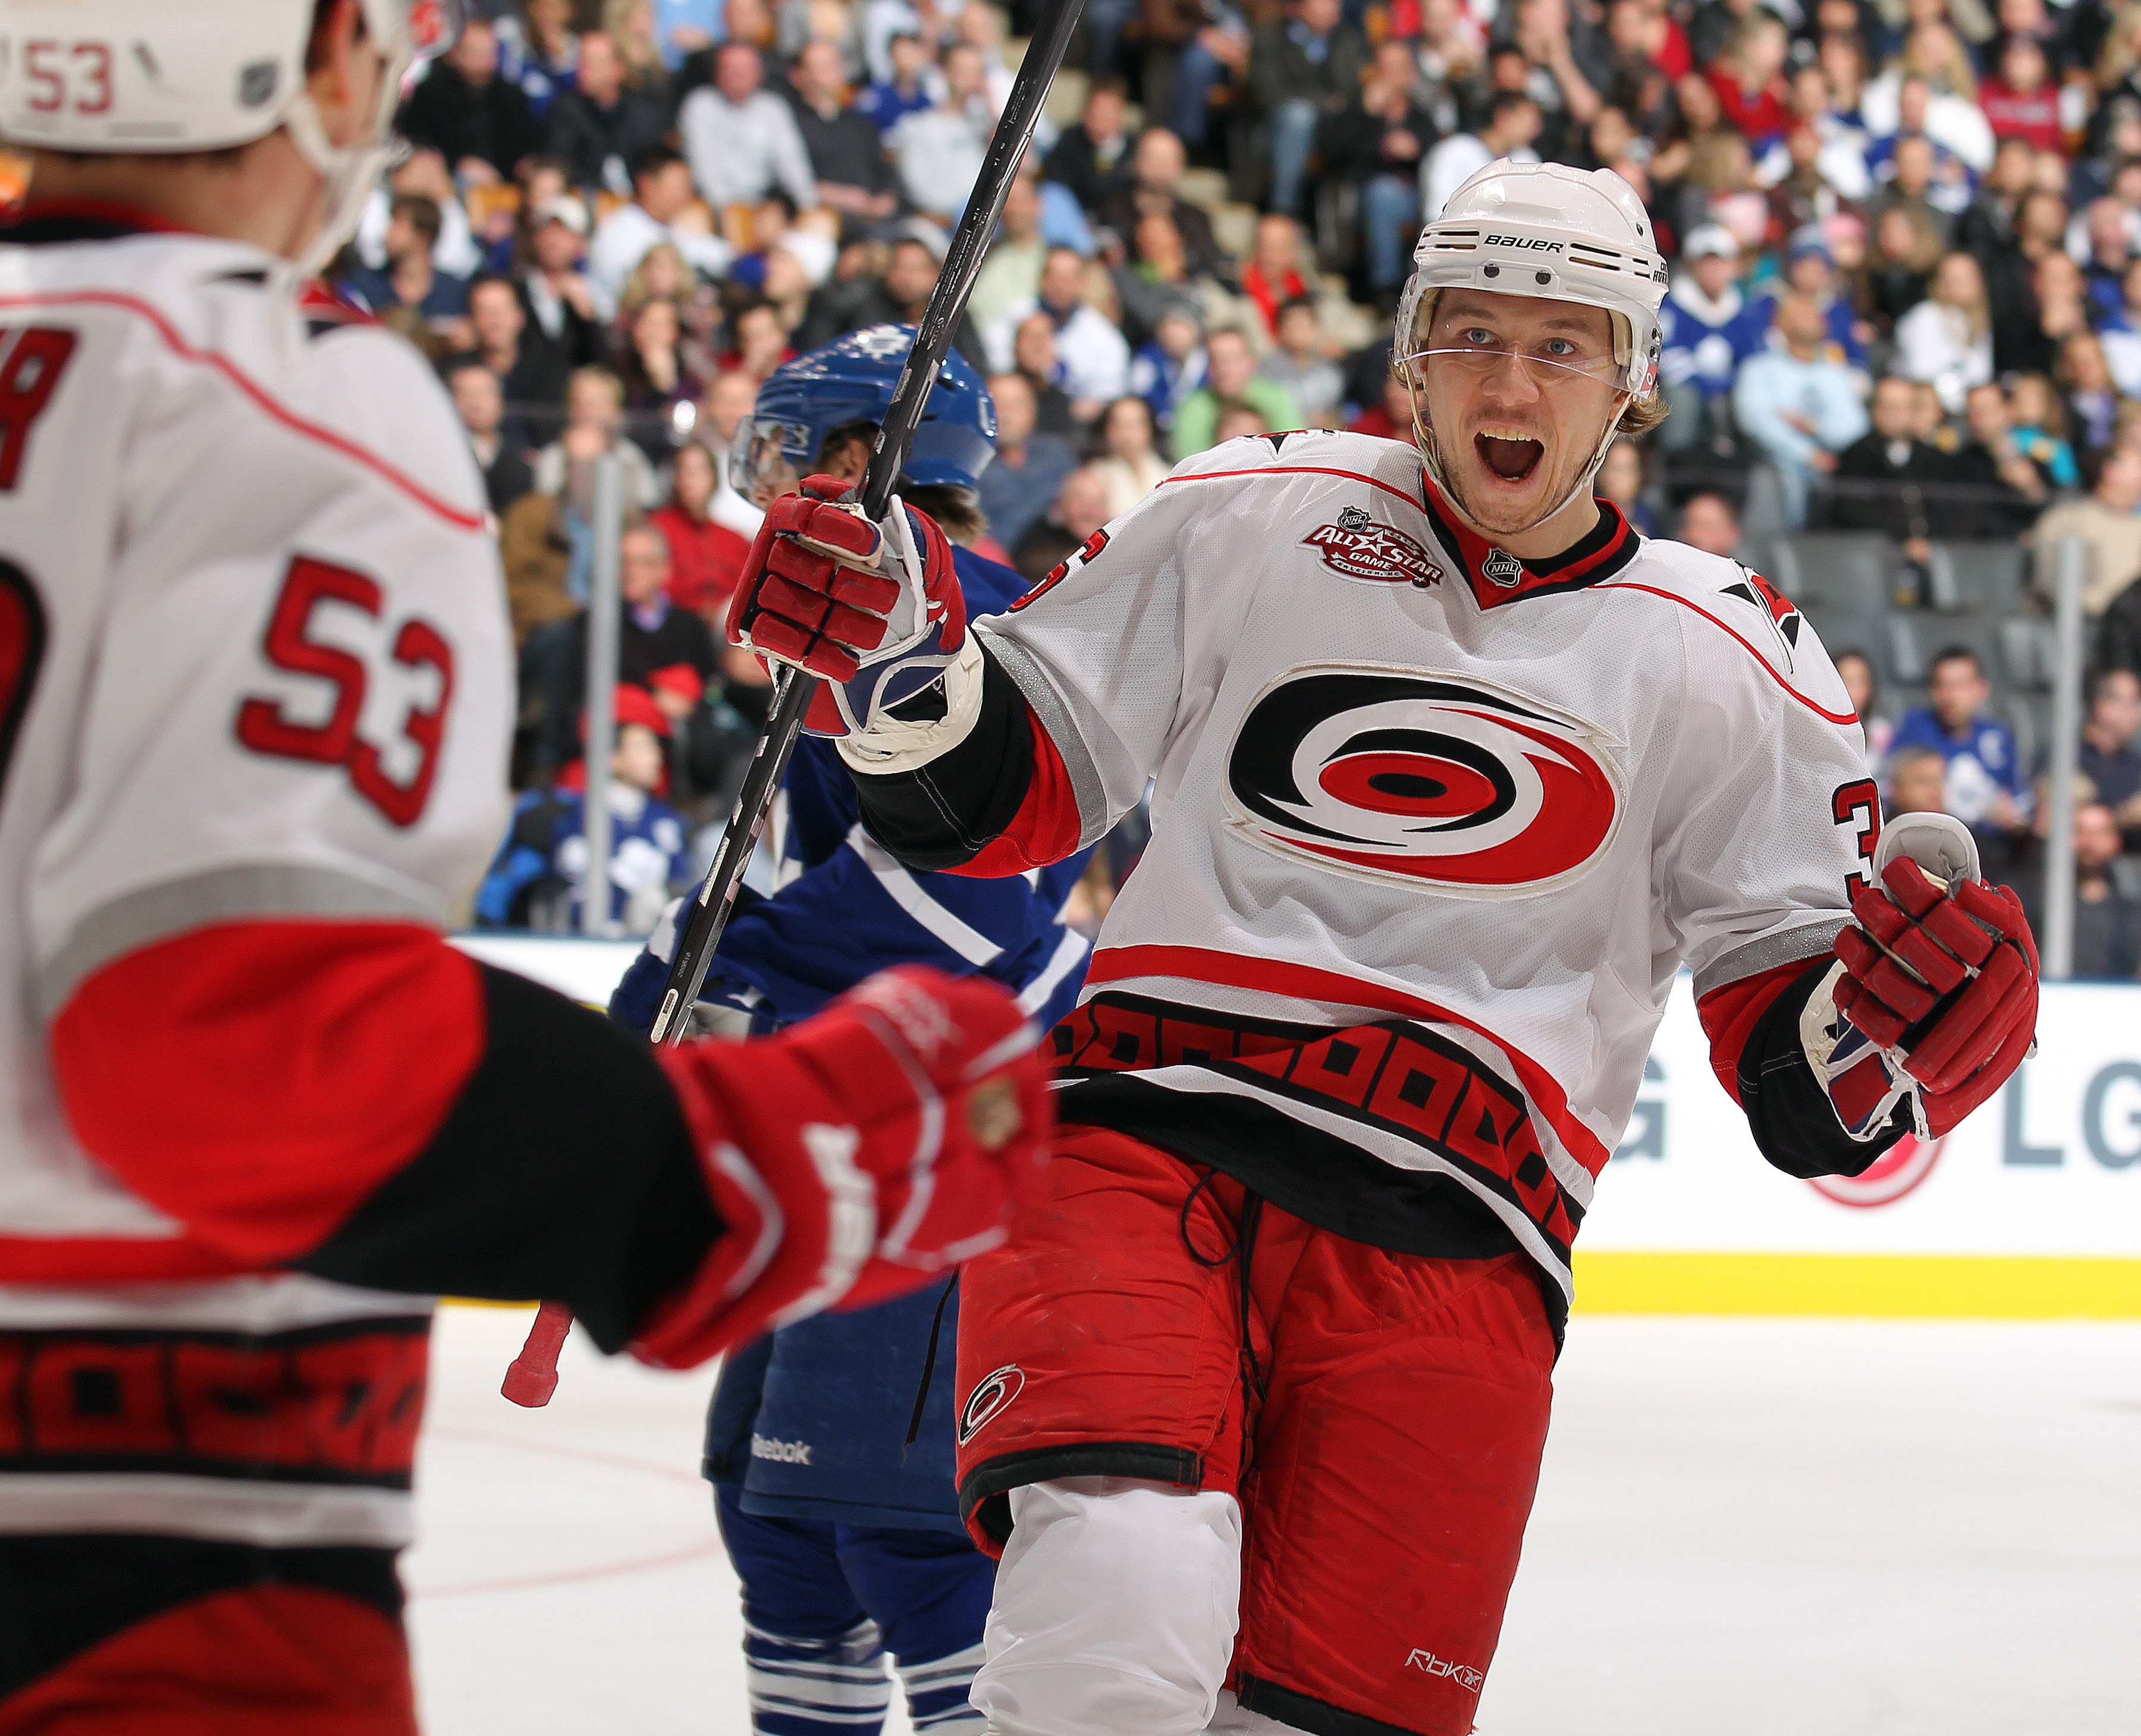 TORONTO,ON - DECEMBER 28:  Jussi Jokinen #36 of the Carolina Hurricanes congratulates teammate Jeff Skinner #53 on his goal in a game against the Toronto Maple Leafs on December 28, 2010 at the Air Canada Centre in Toronto, Ontario. (Photo by Claus Anders